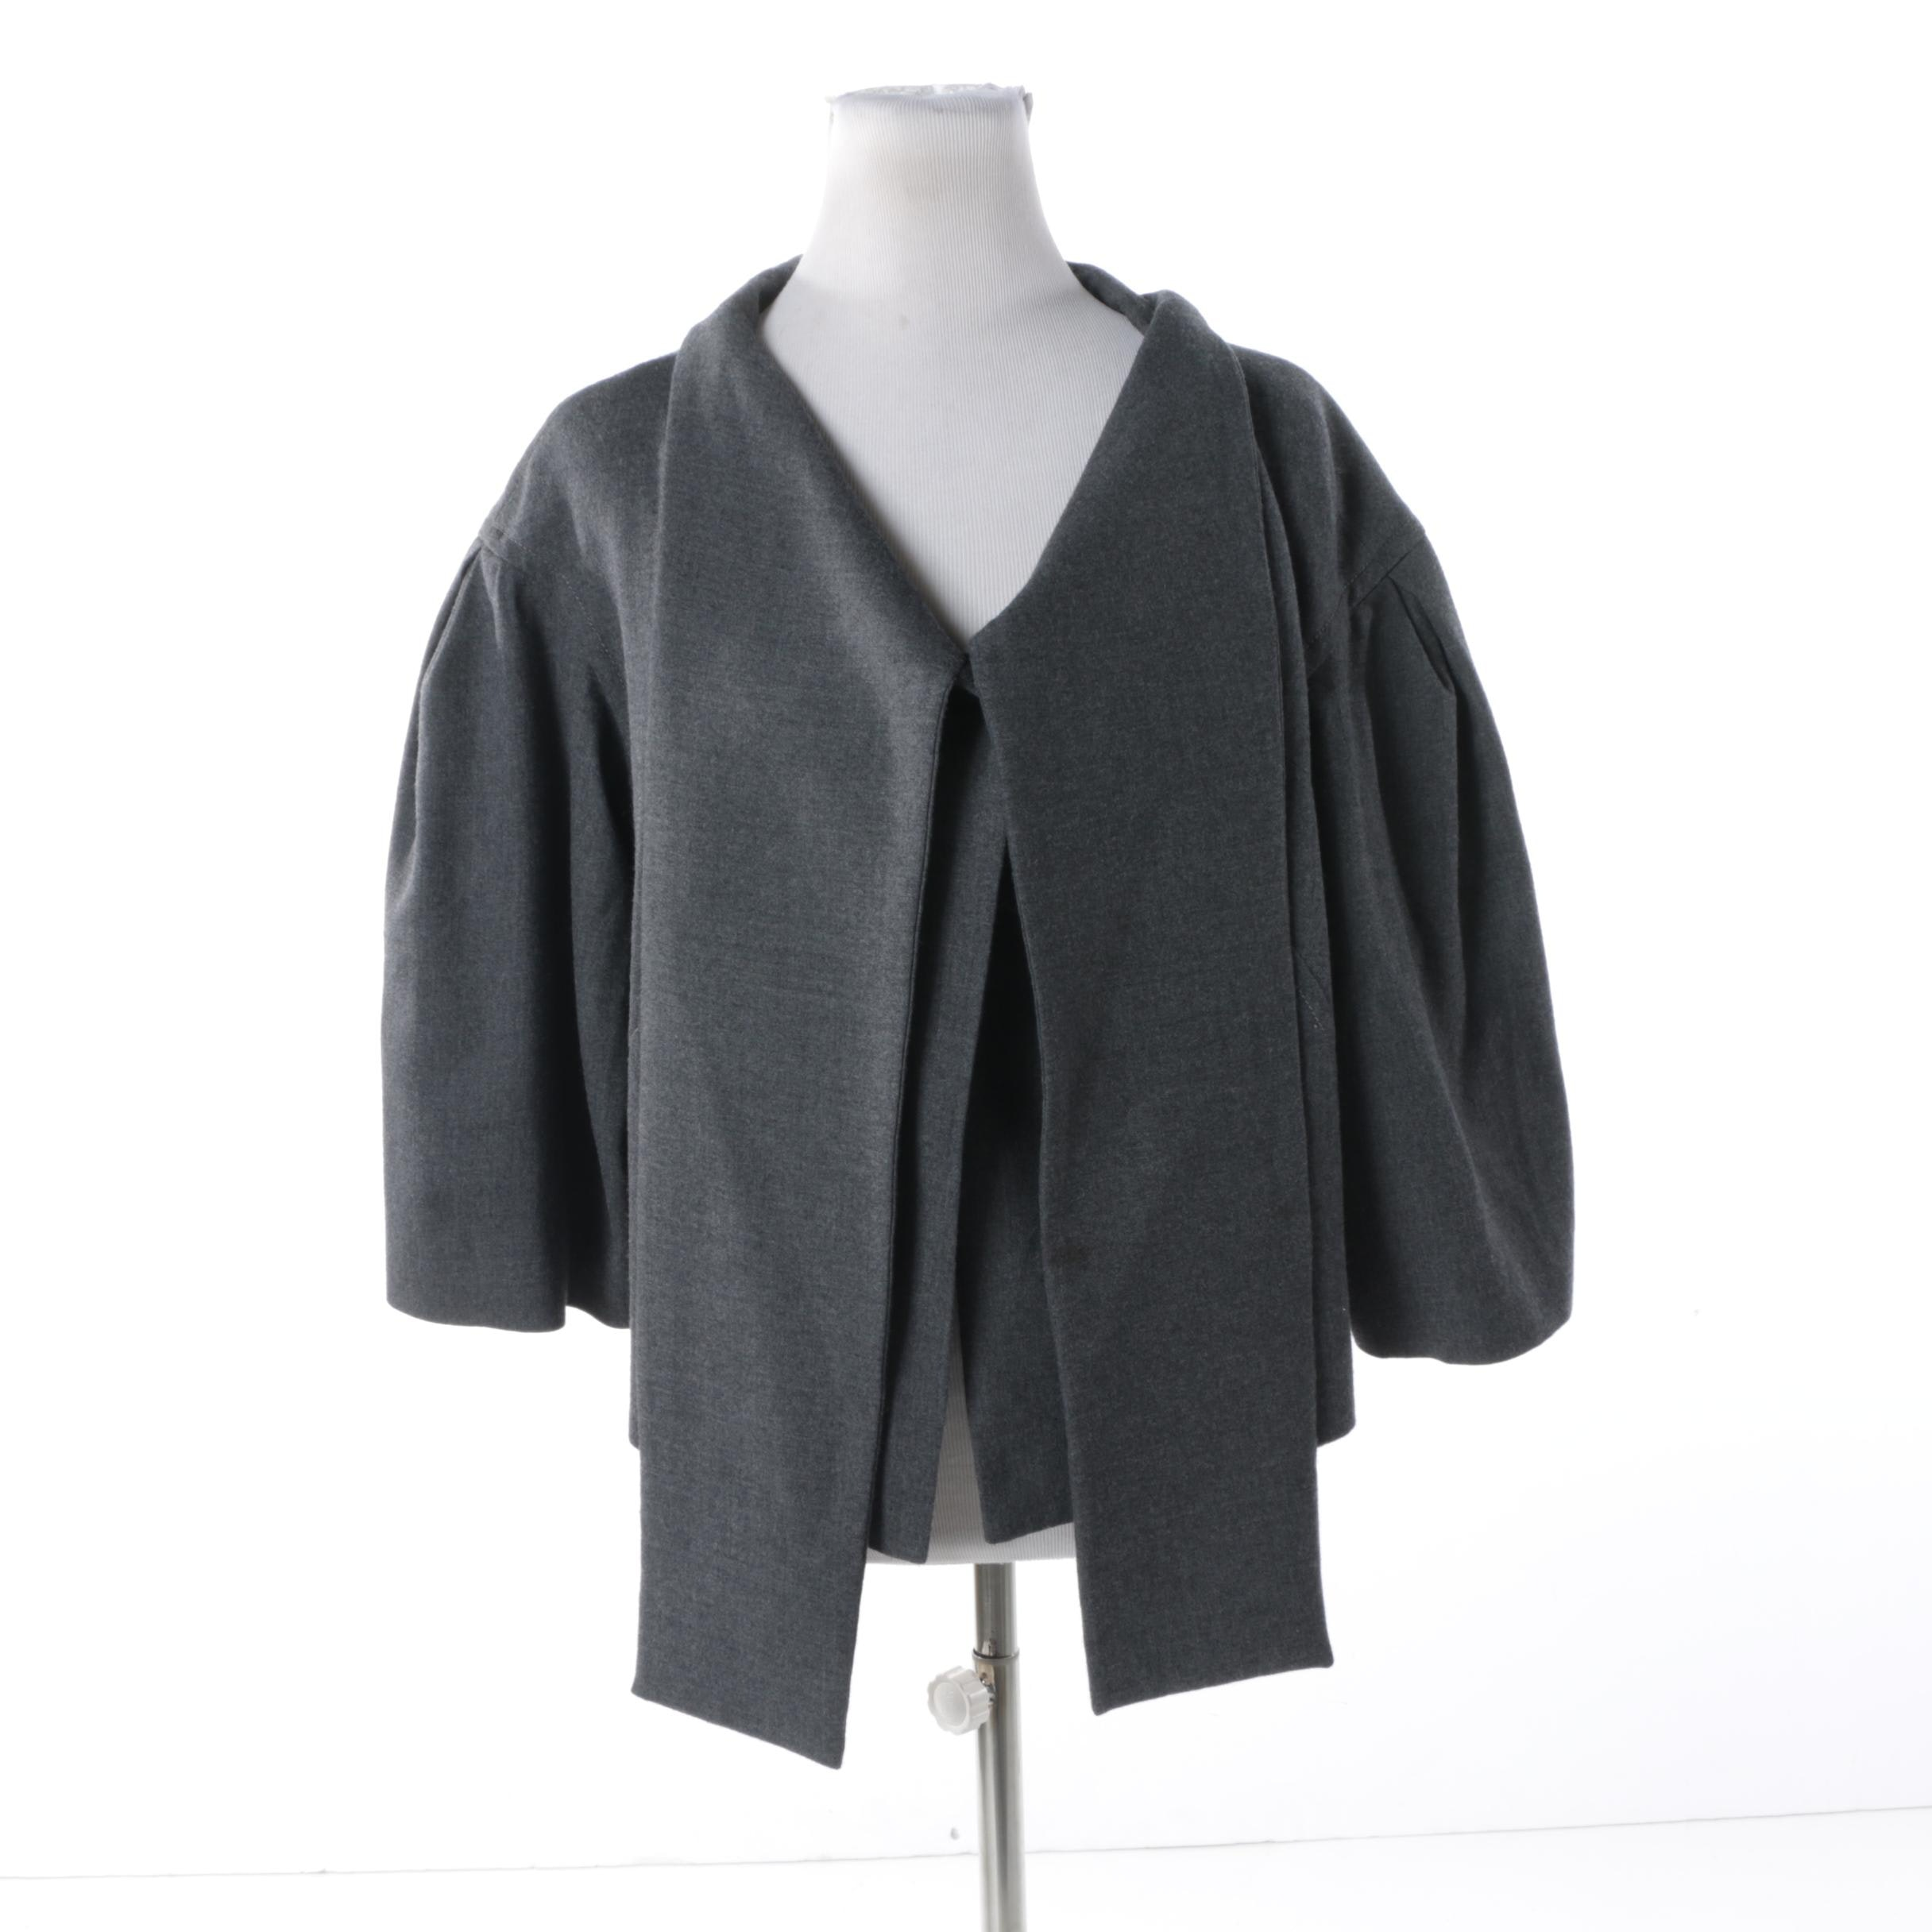 Women's Magaschoni Collection Gray Wool Jacket with Collar Scarf